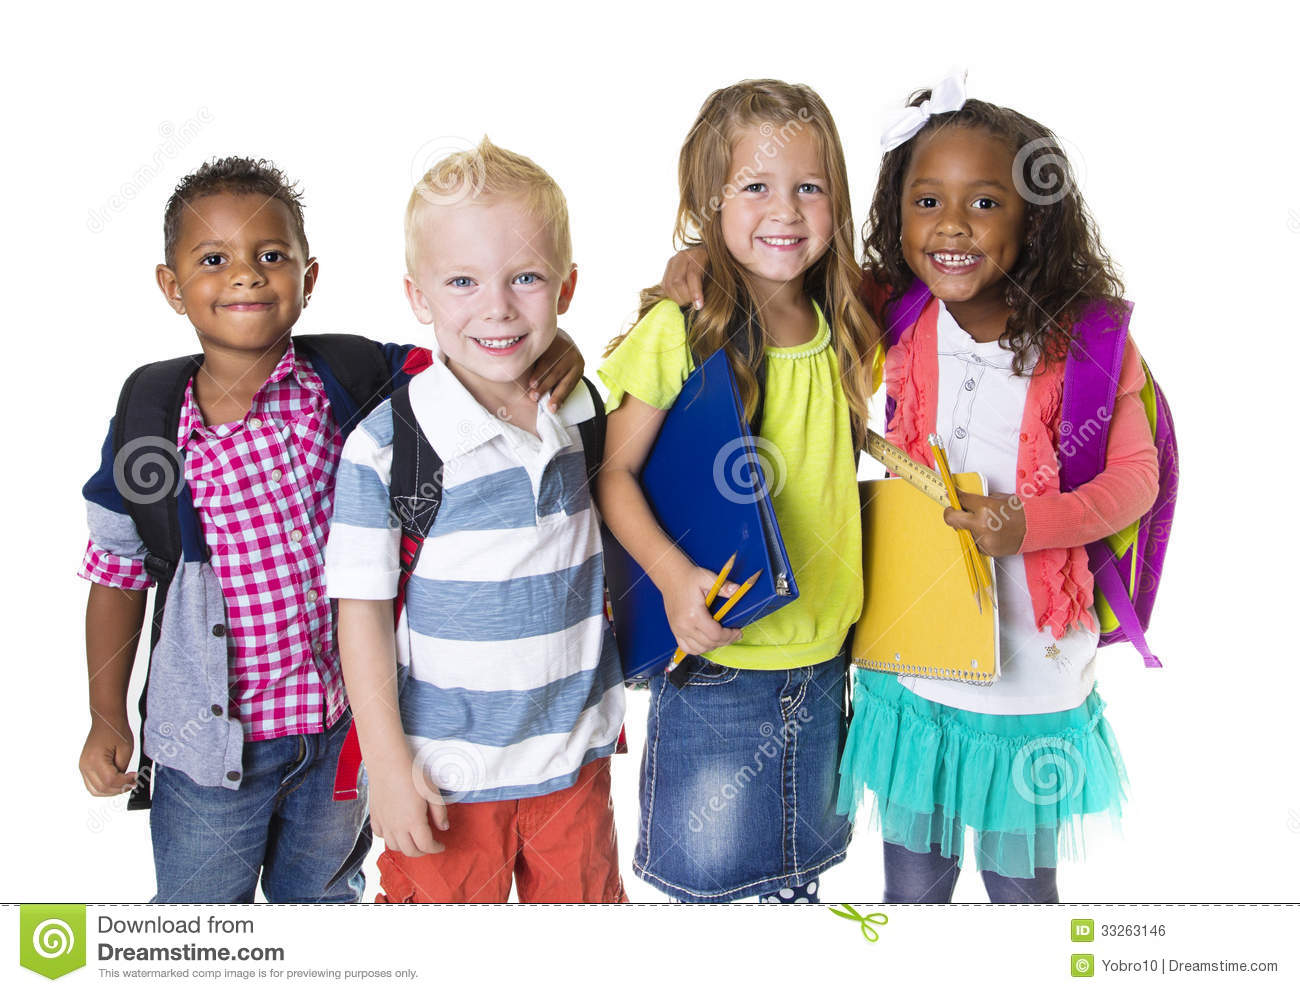 elementary school kids group royalty free stock image - School Pictures For Kids